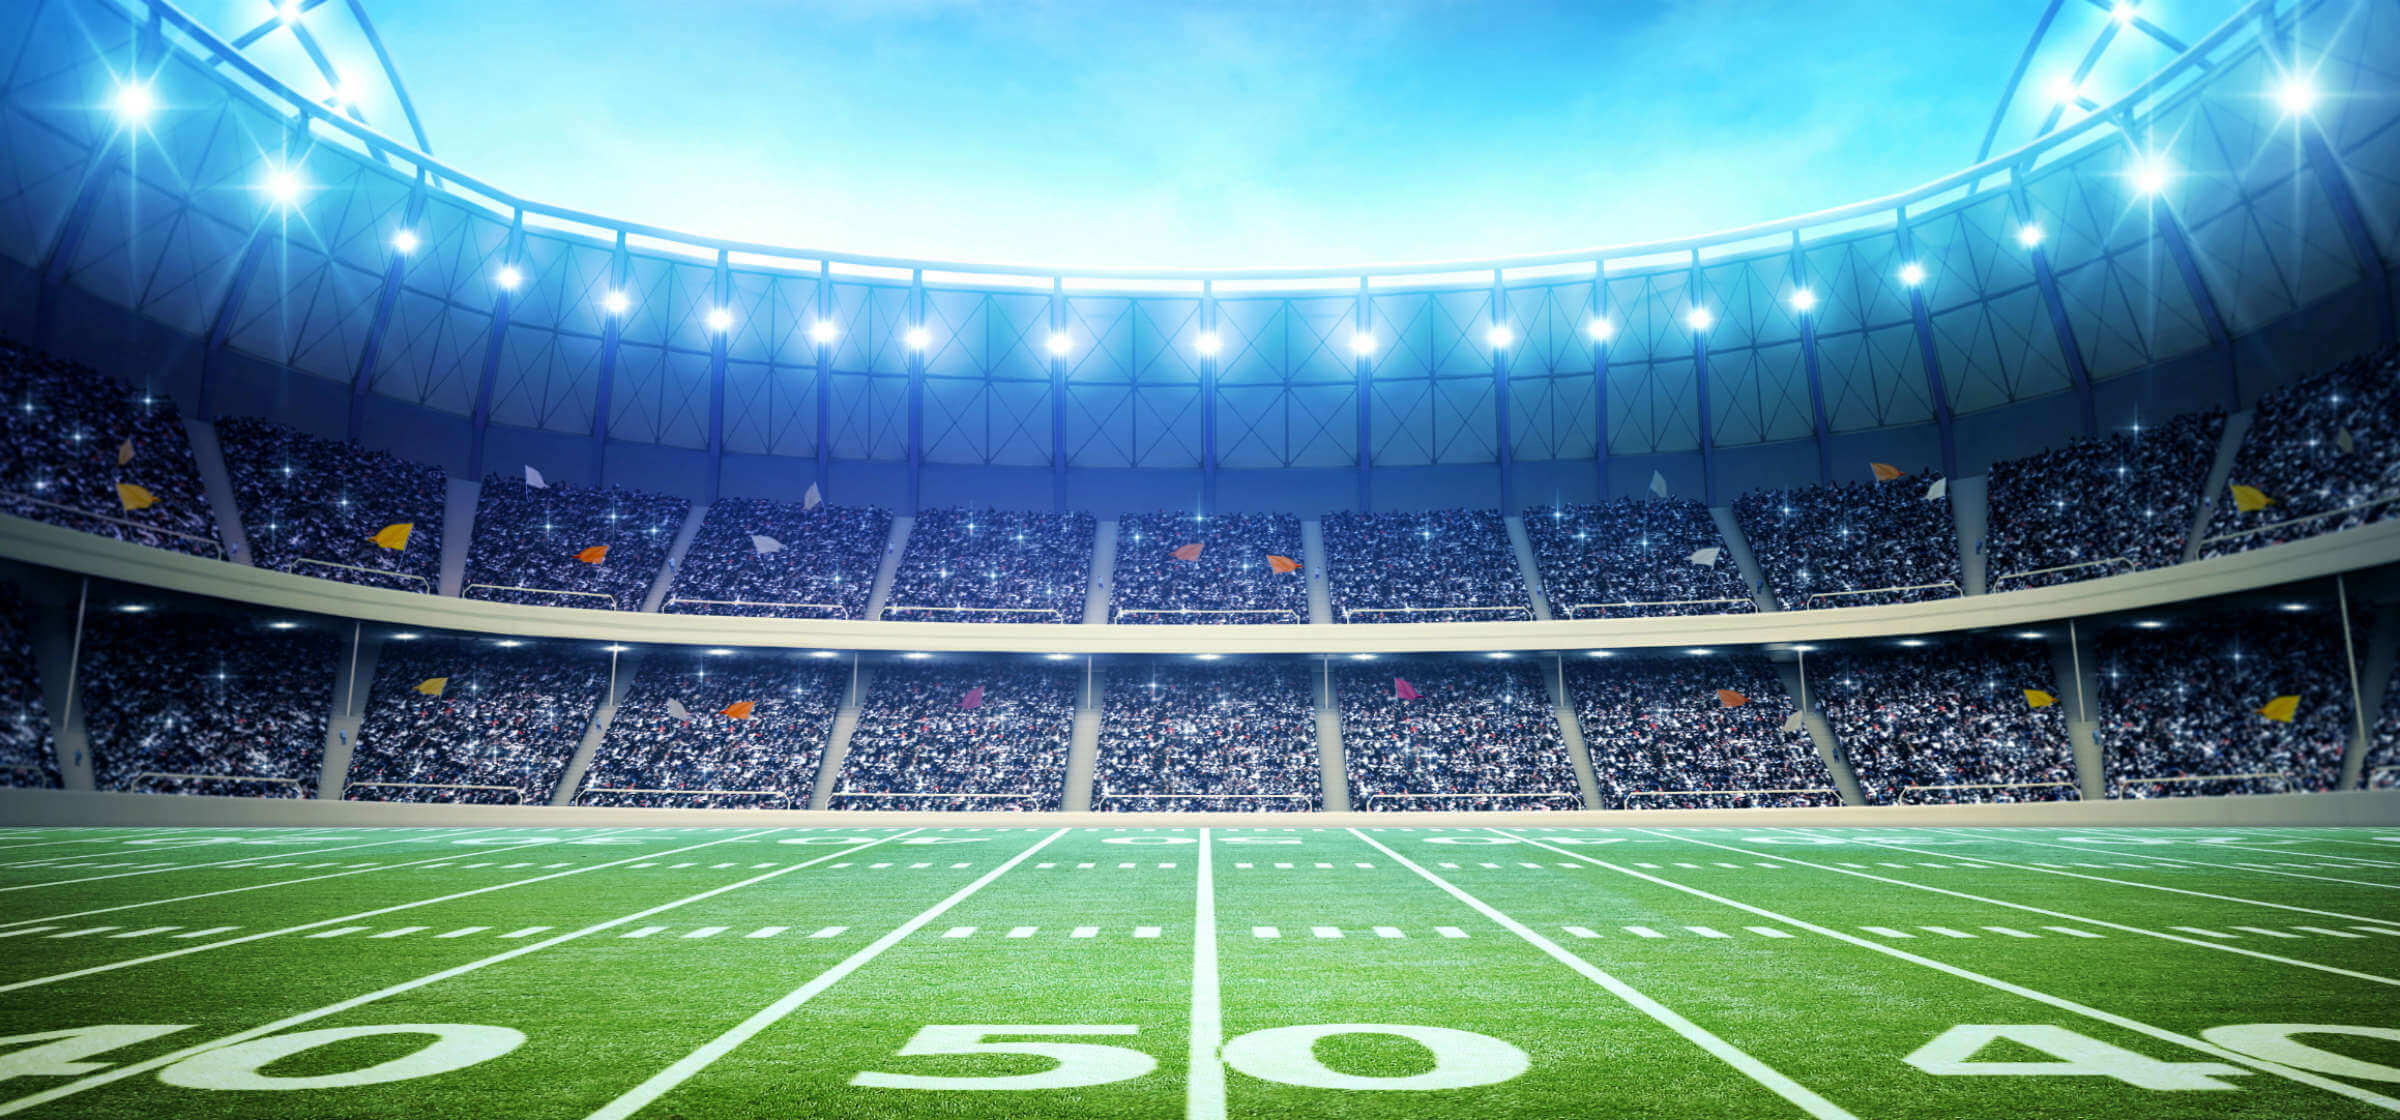 Is it Time to Upgrade the Stadium Lighting System?